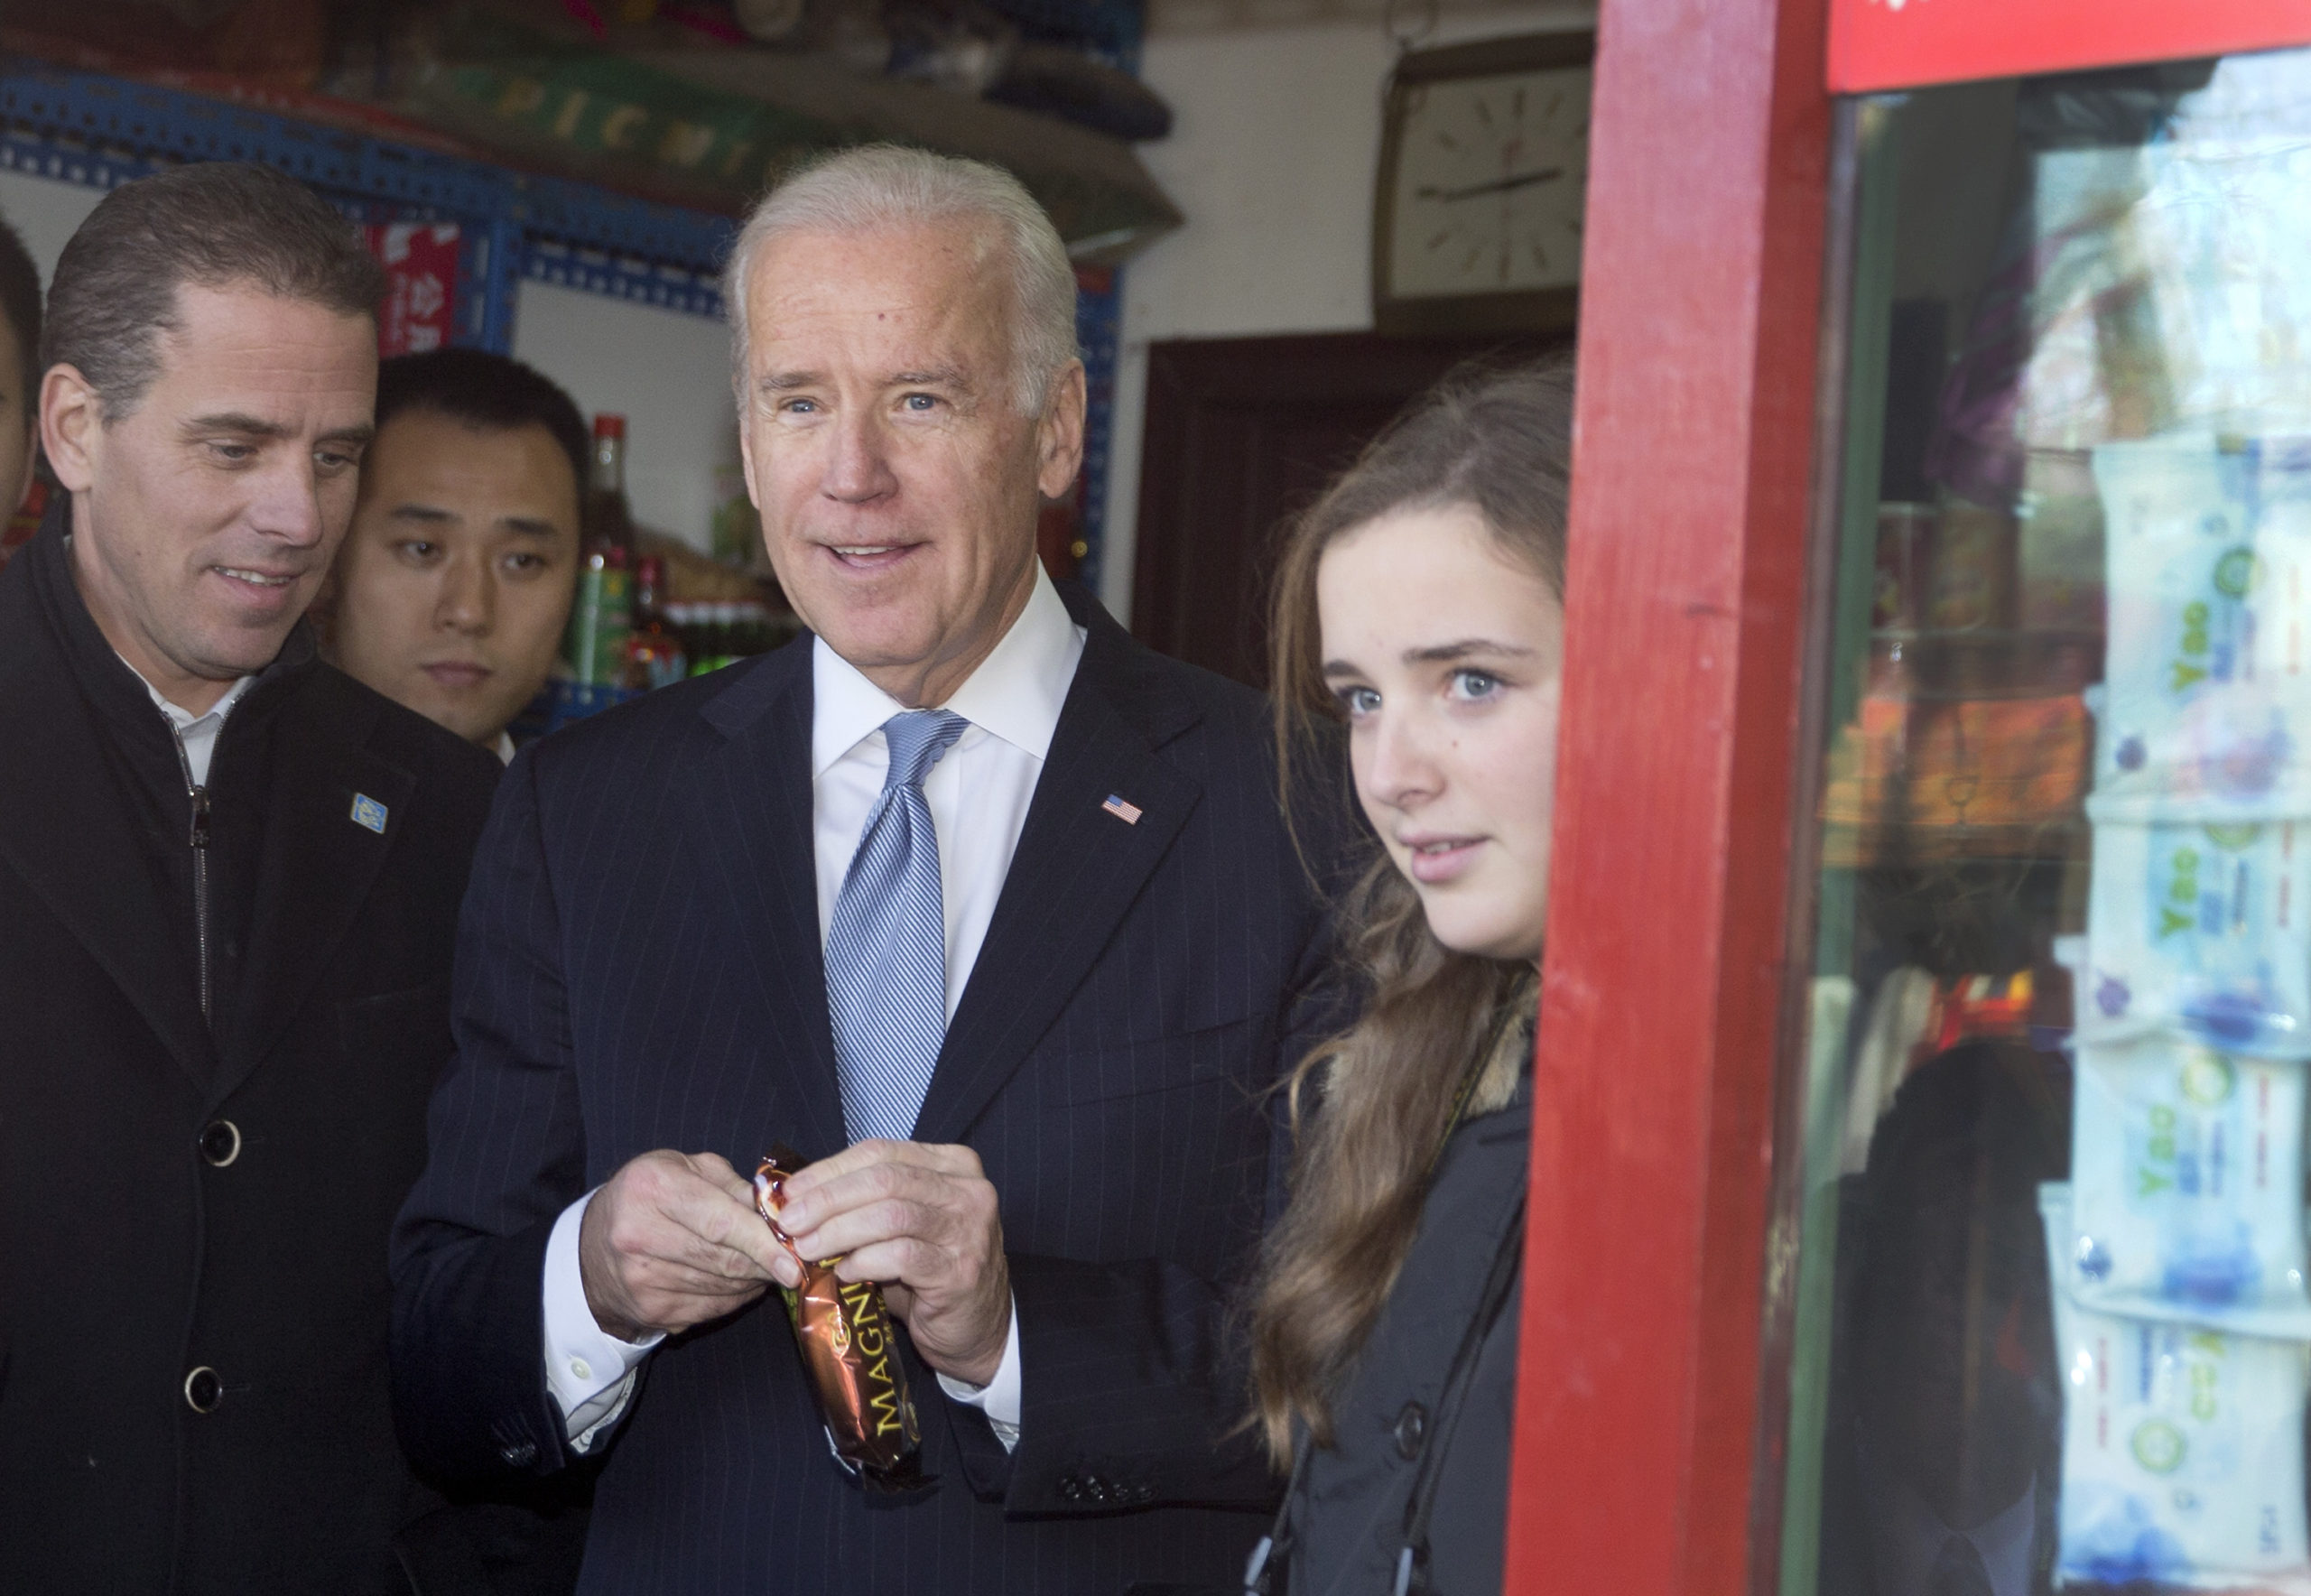 U.S. Vice President Joe Biden, center, buys an ice-cream at a shop as he tours a Hutong alley with his granddaughter Finnegan Biden, right, and son Hunter Biden, left on December 5, 2013 in Beijing, China. (Andy Wong-Pool/Getty Images)